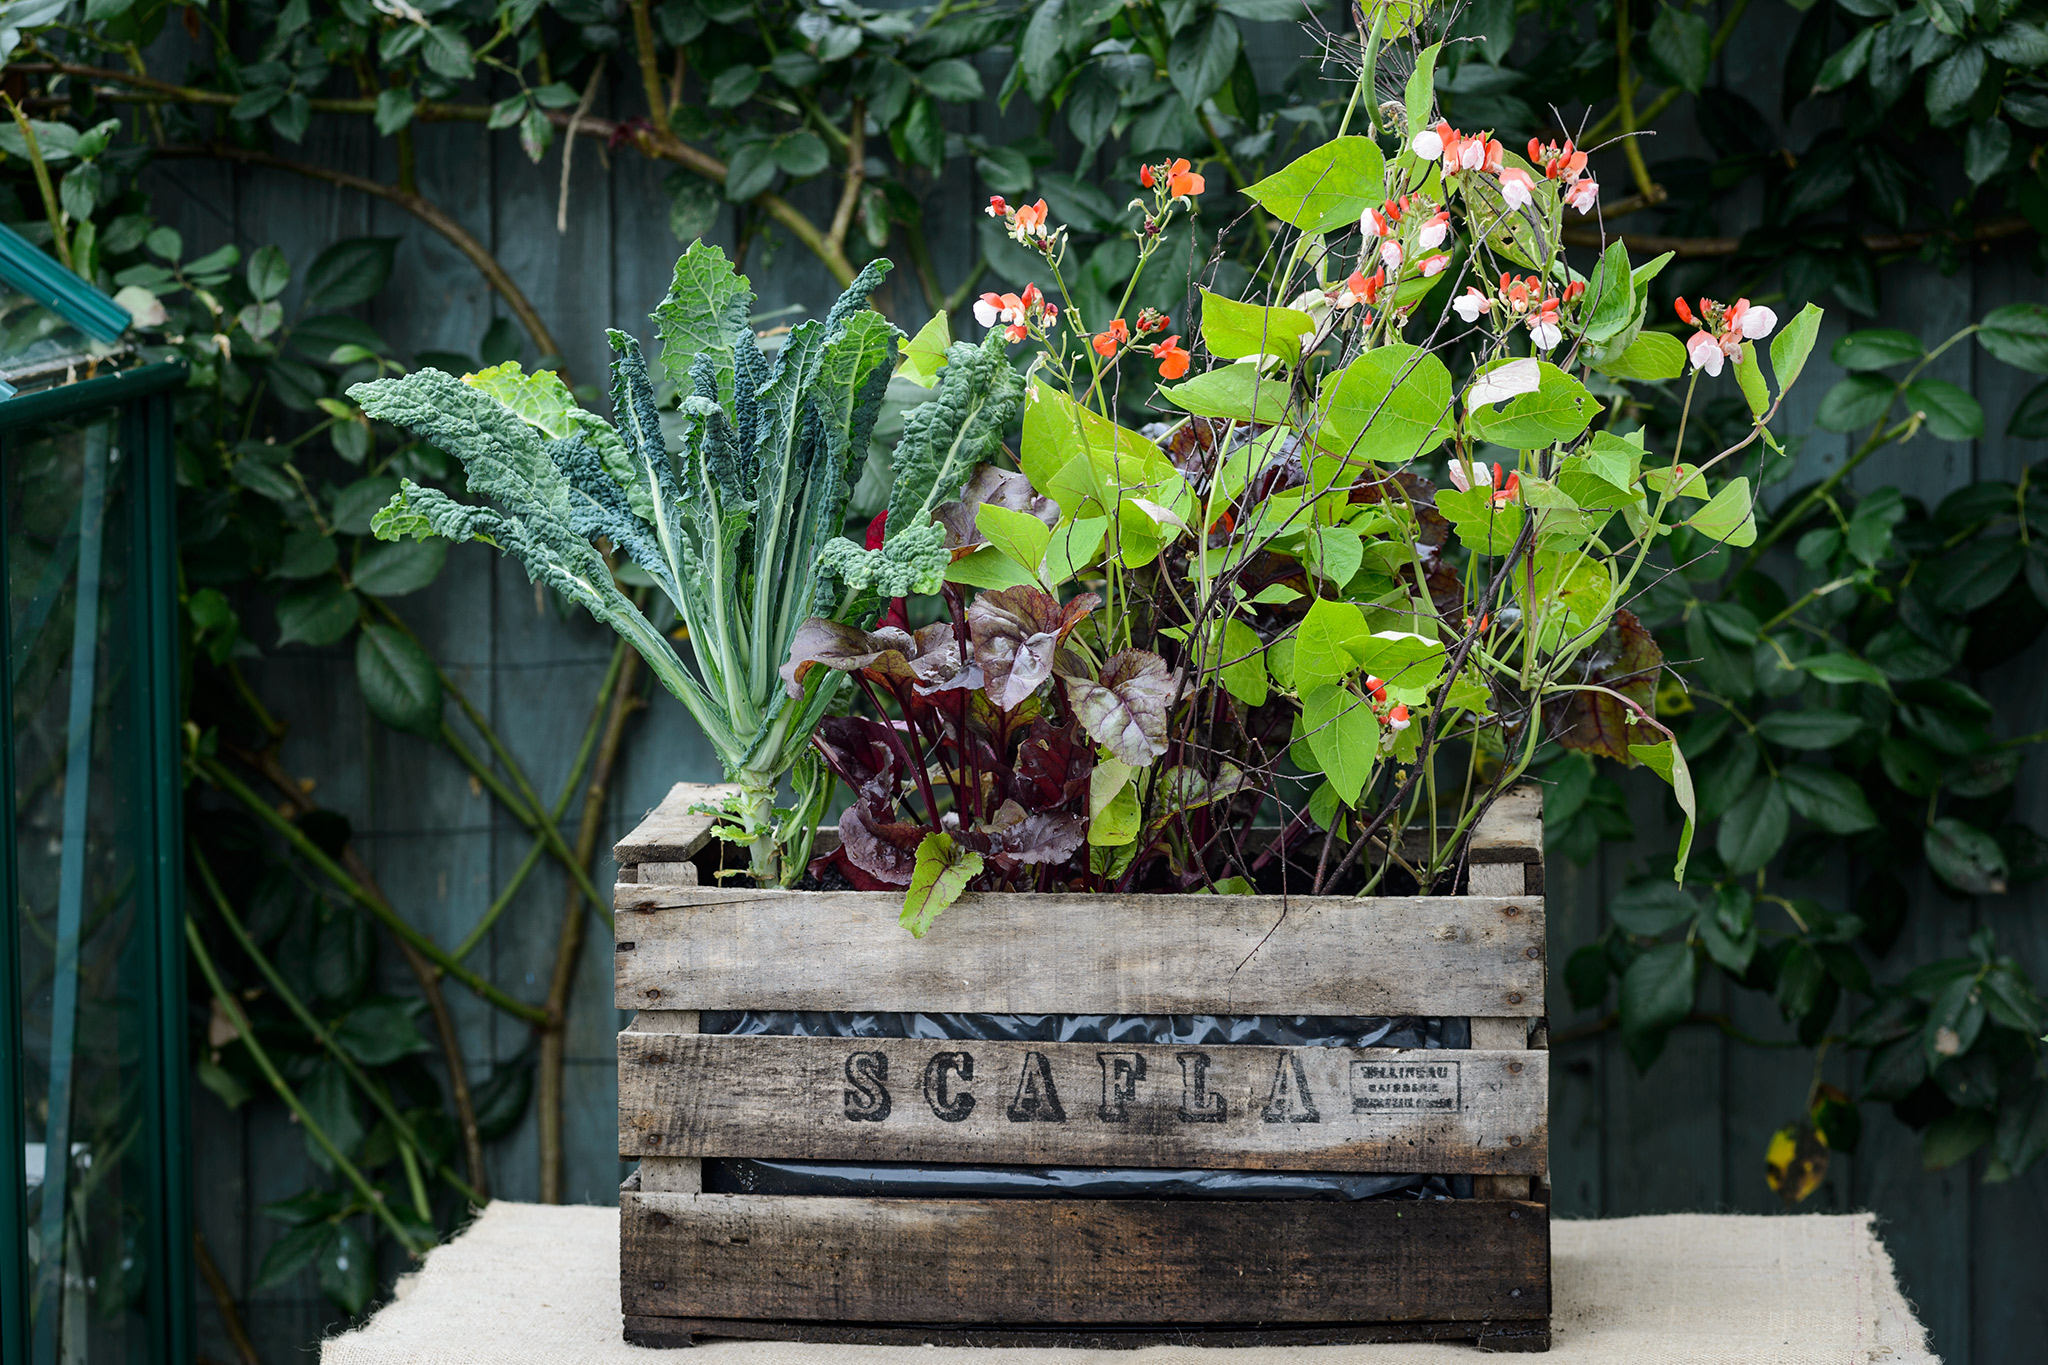 Wooden crate planted with vegetables